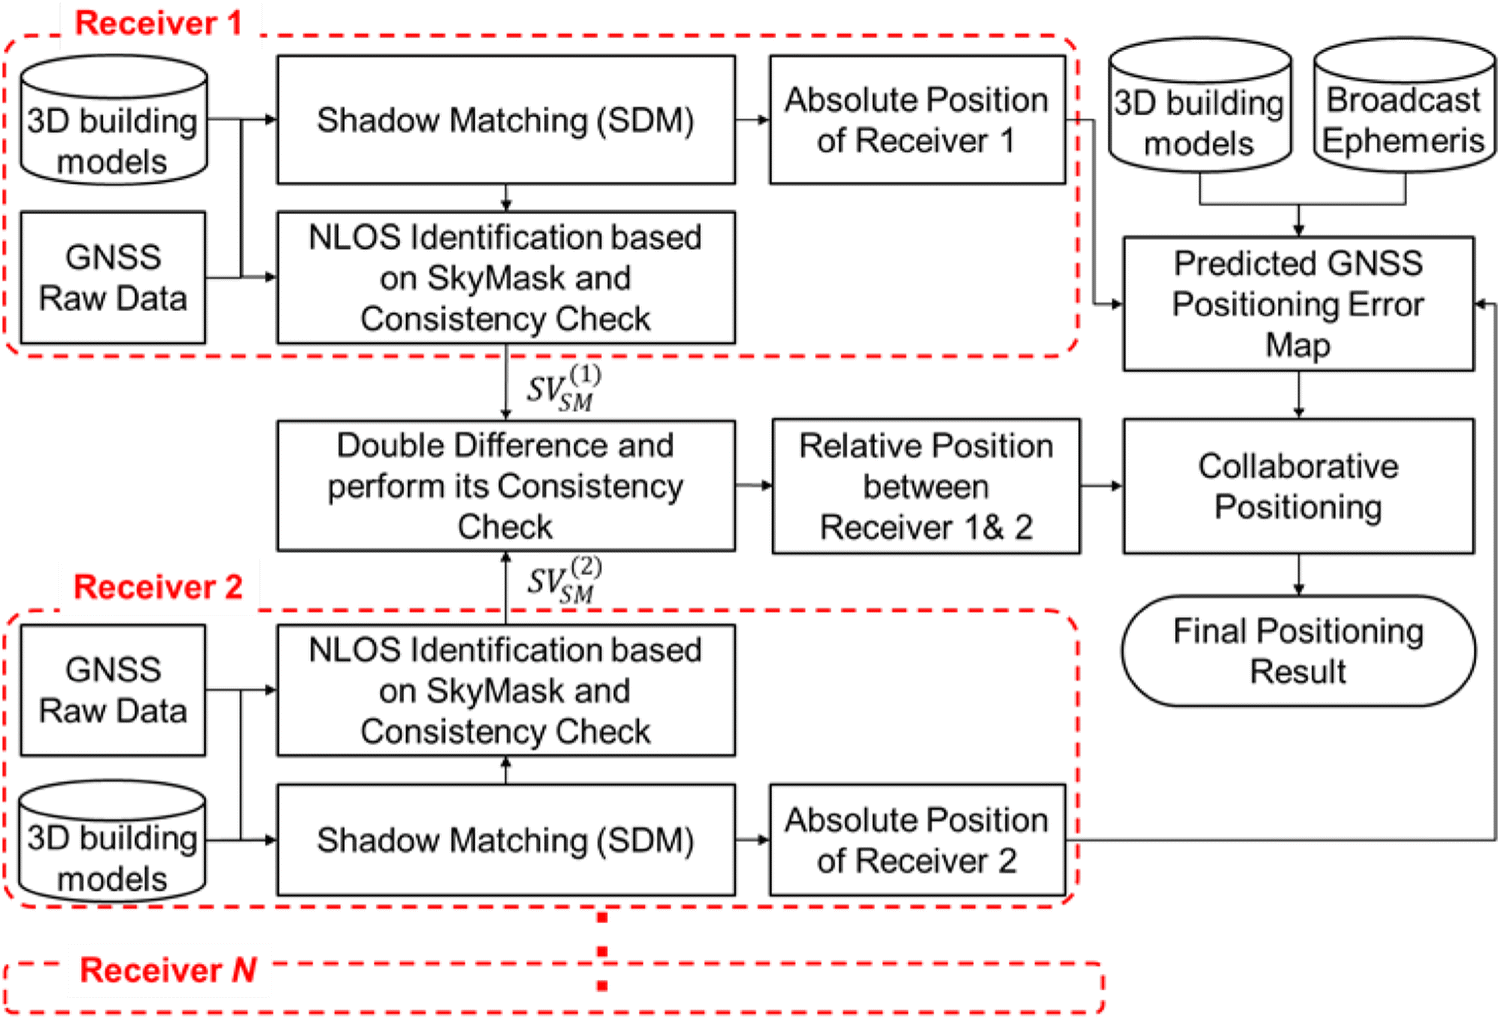 Rectification of GNSS-based collaborative positioning using